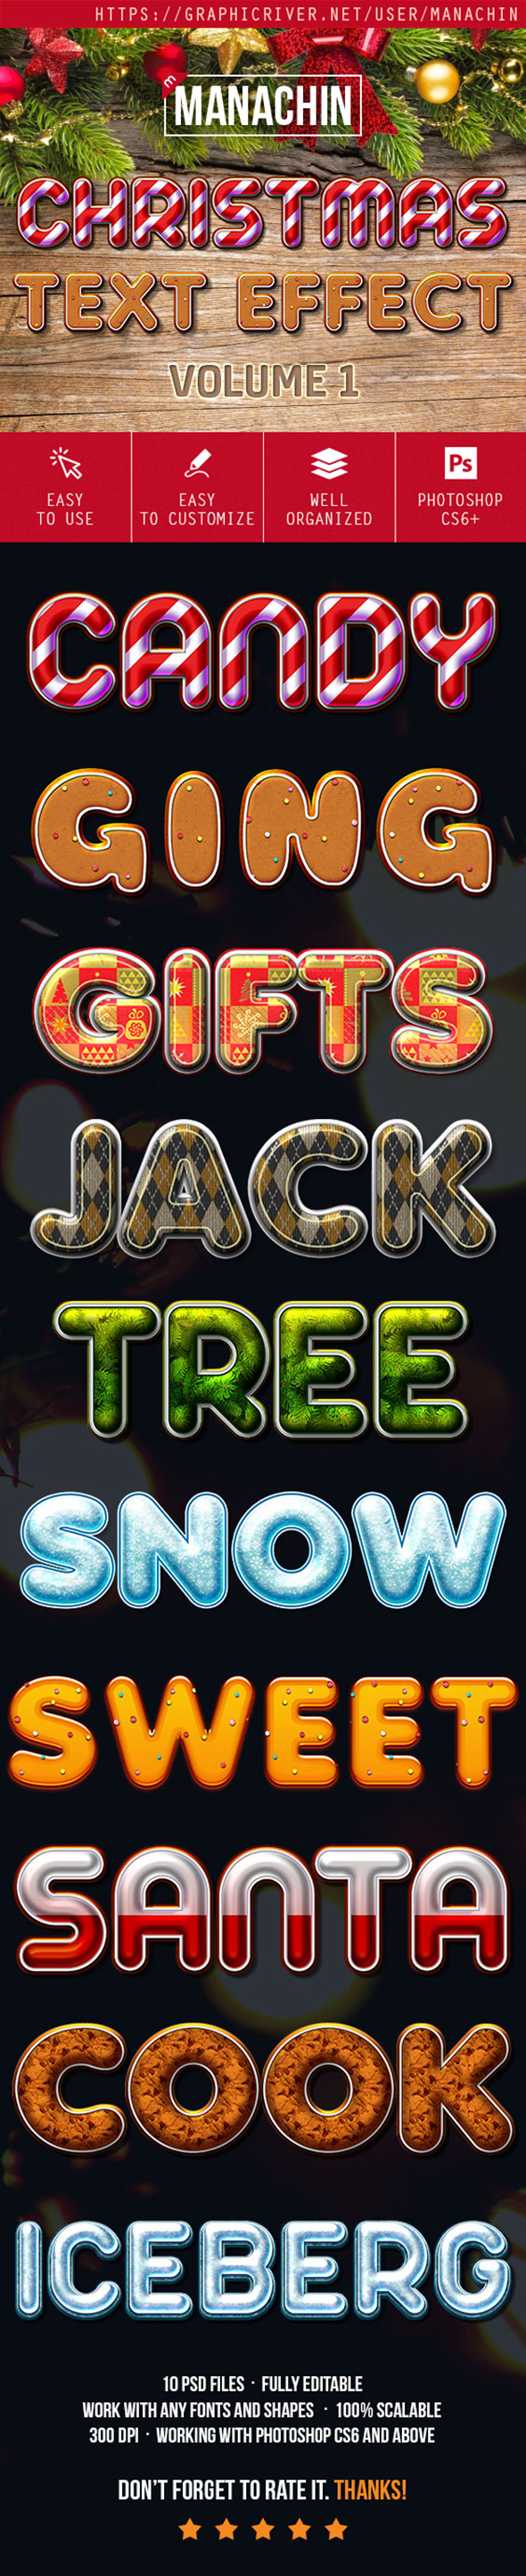 Premium Christmas Text Effects Vol.1 - Text Effects Actions